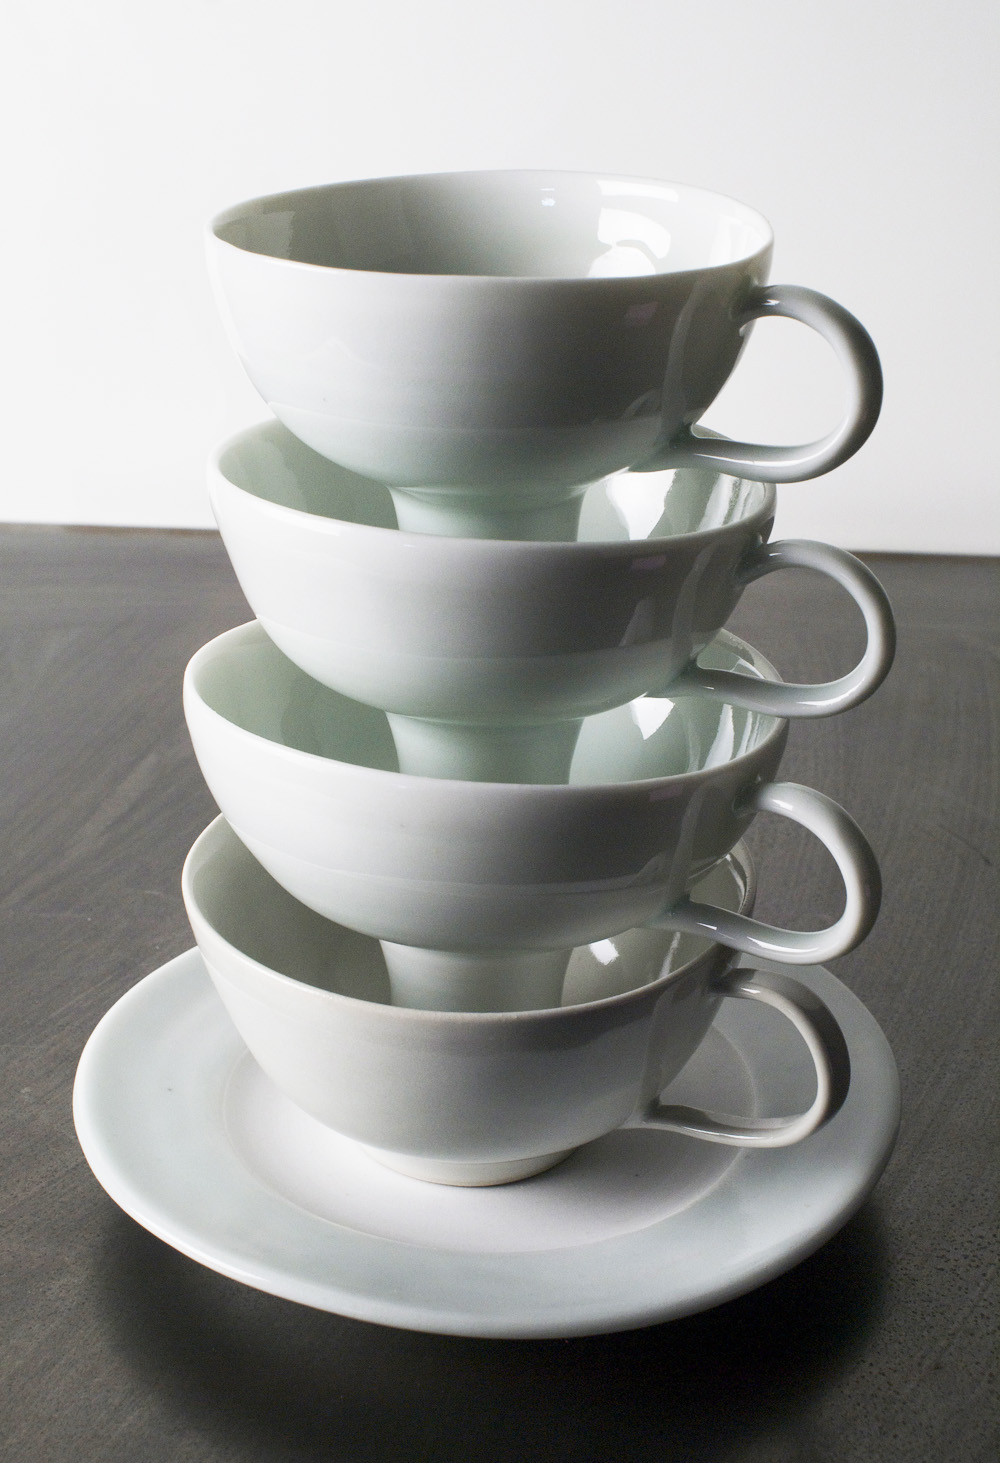 Lois Harbaugh   Stack , 2010  Cone 10 porcelain